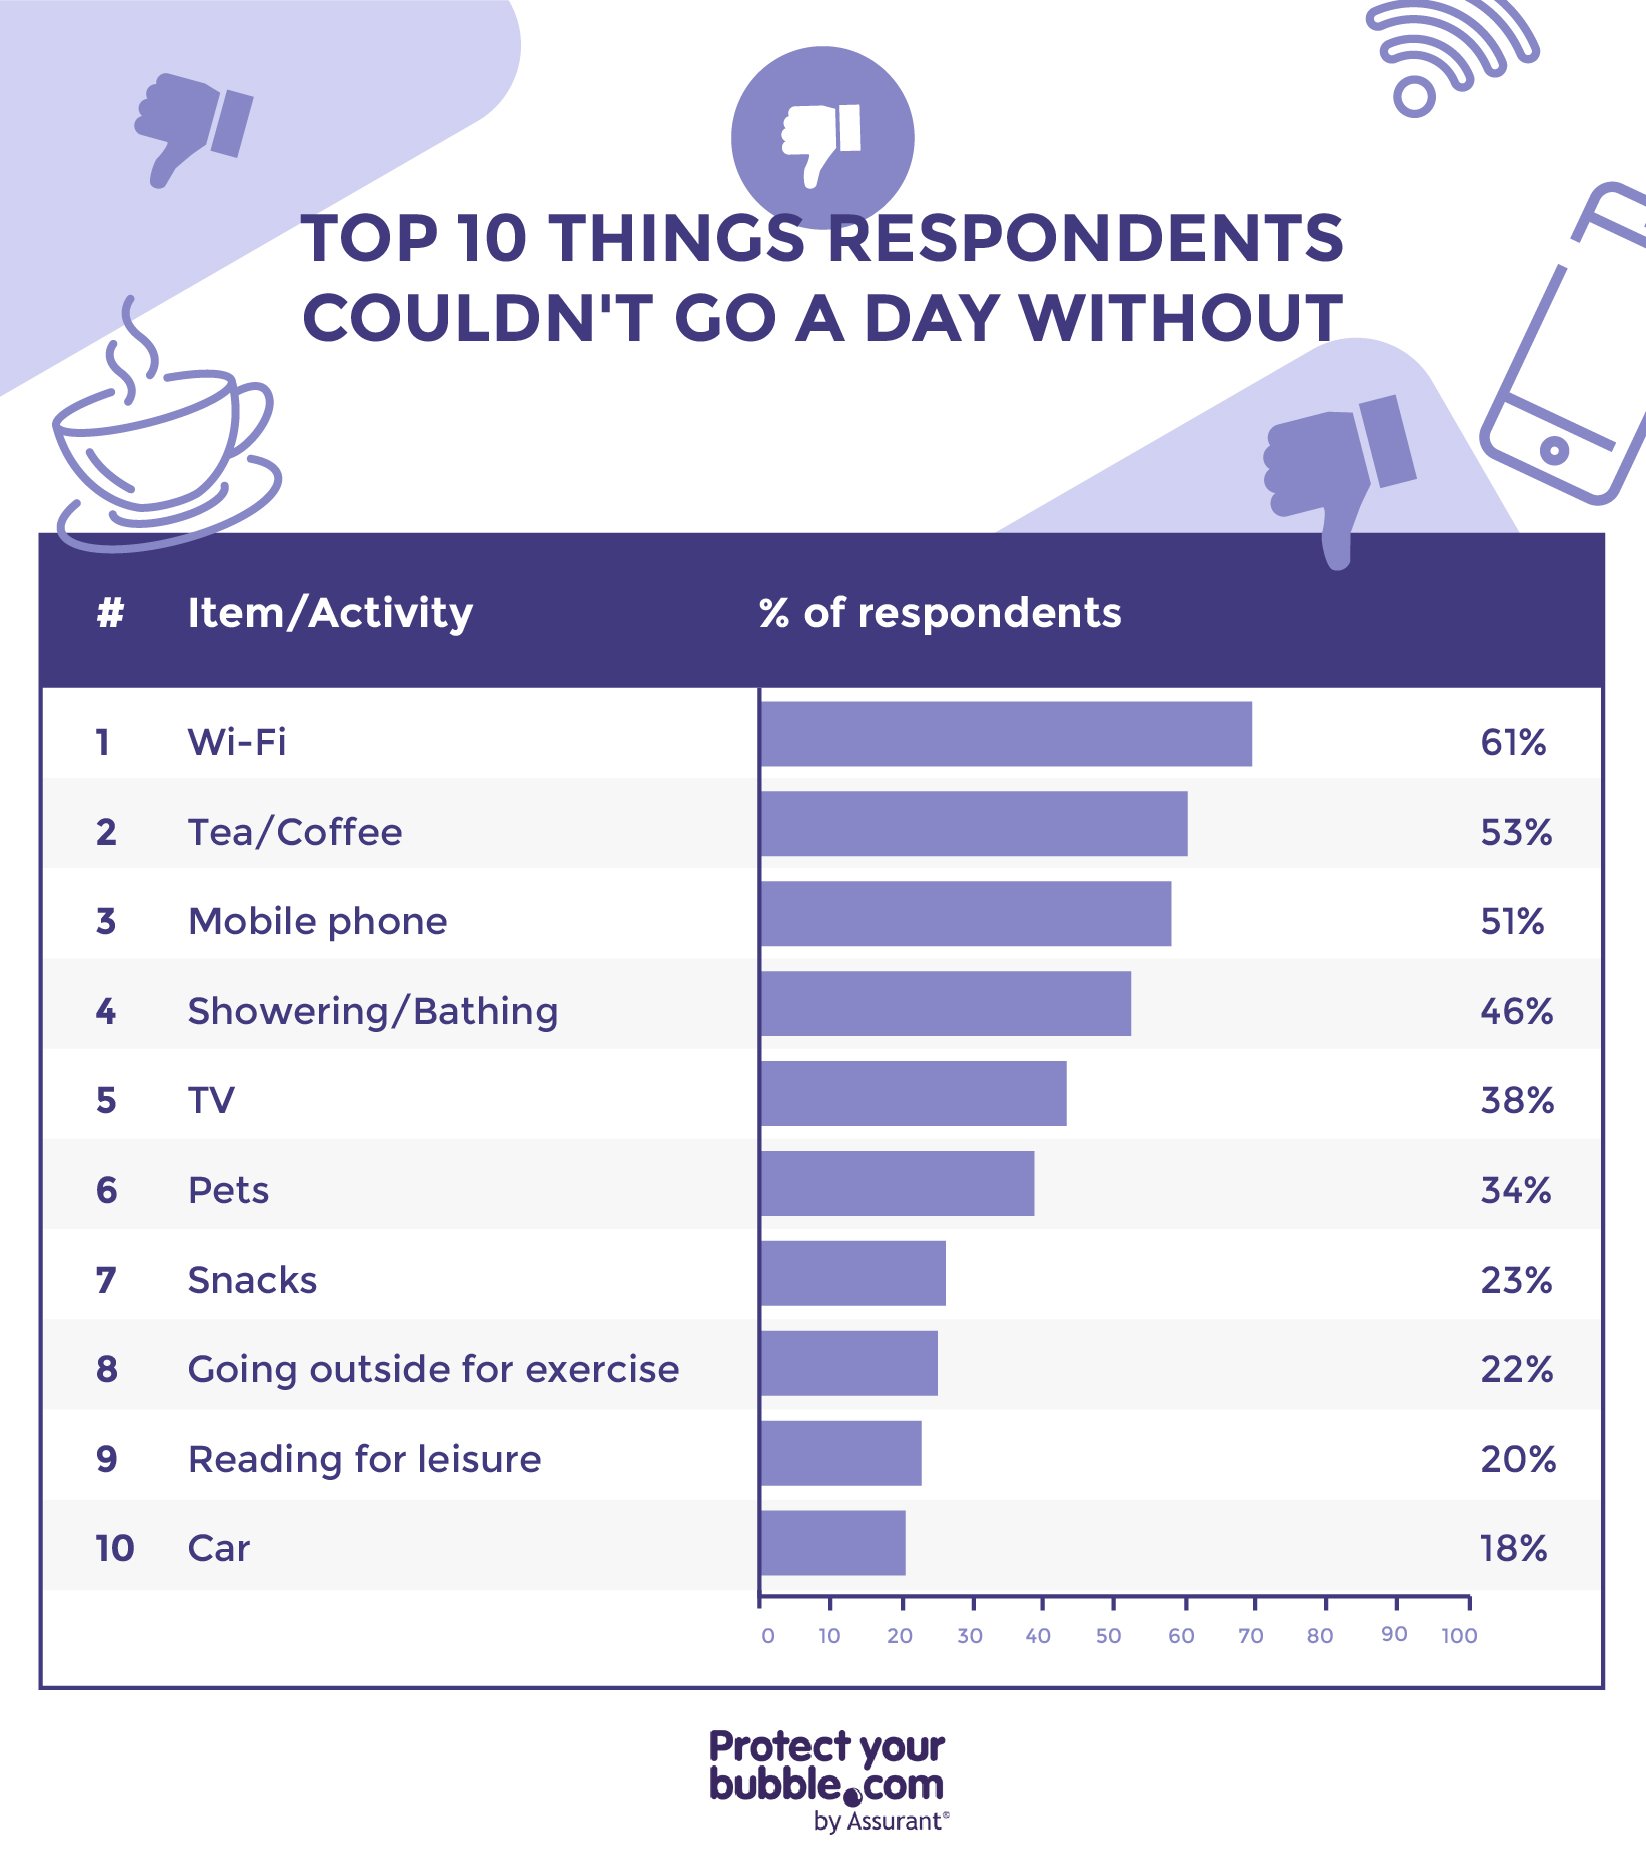 image showing things respondents couldnt go a day without